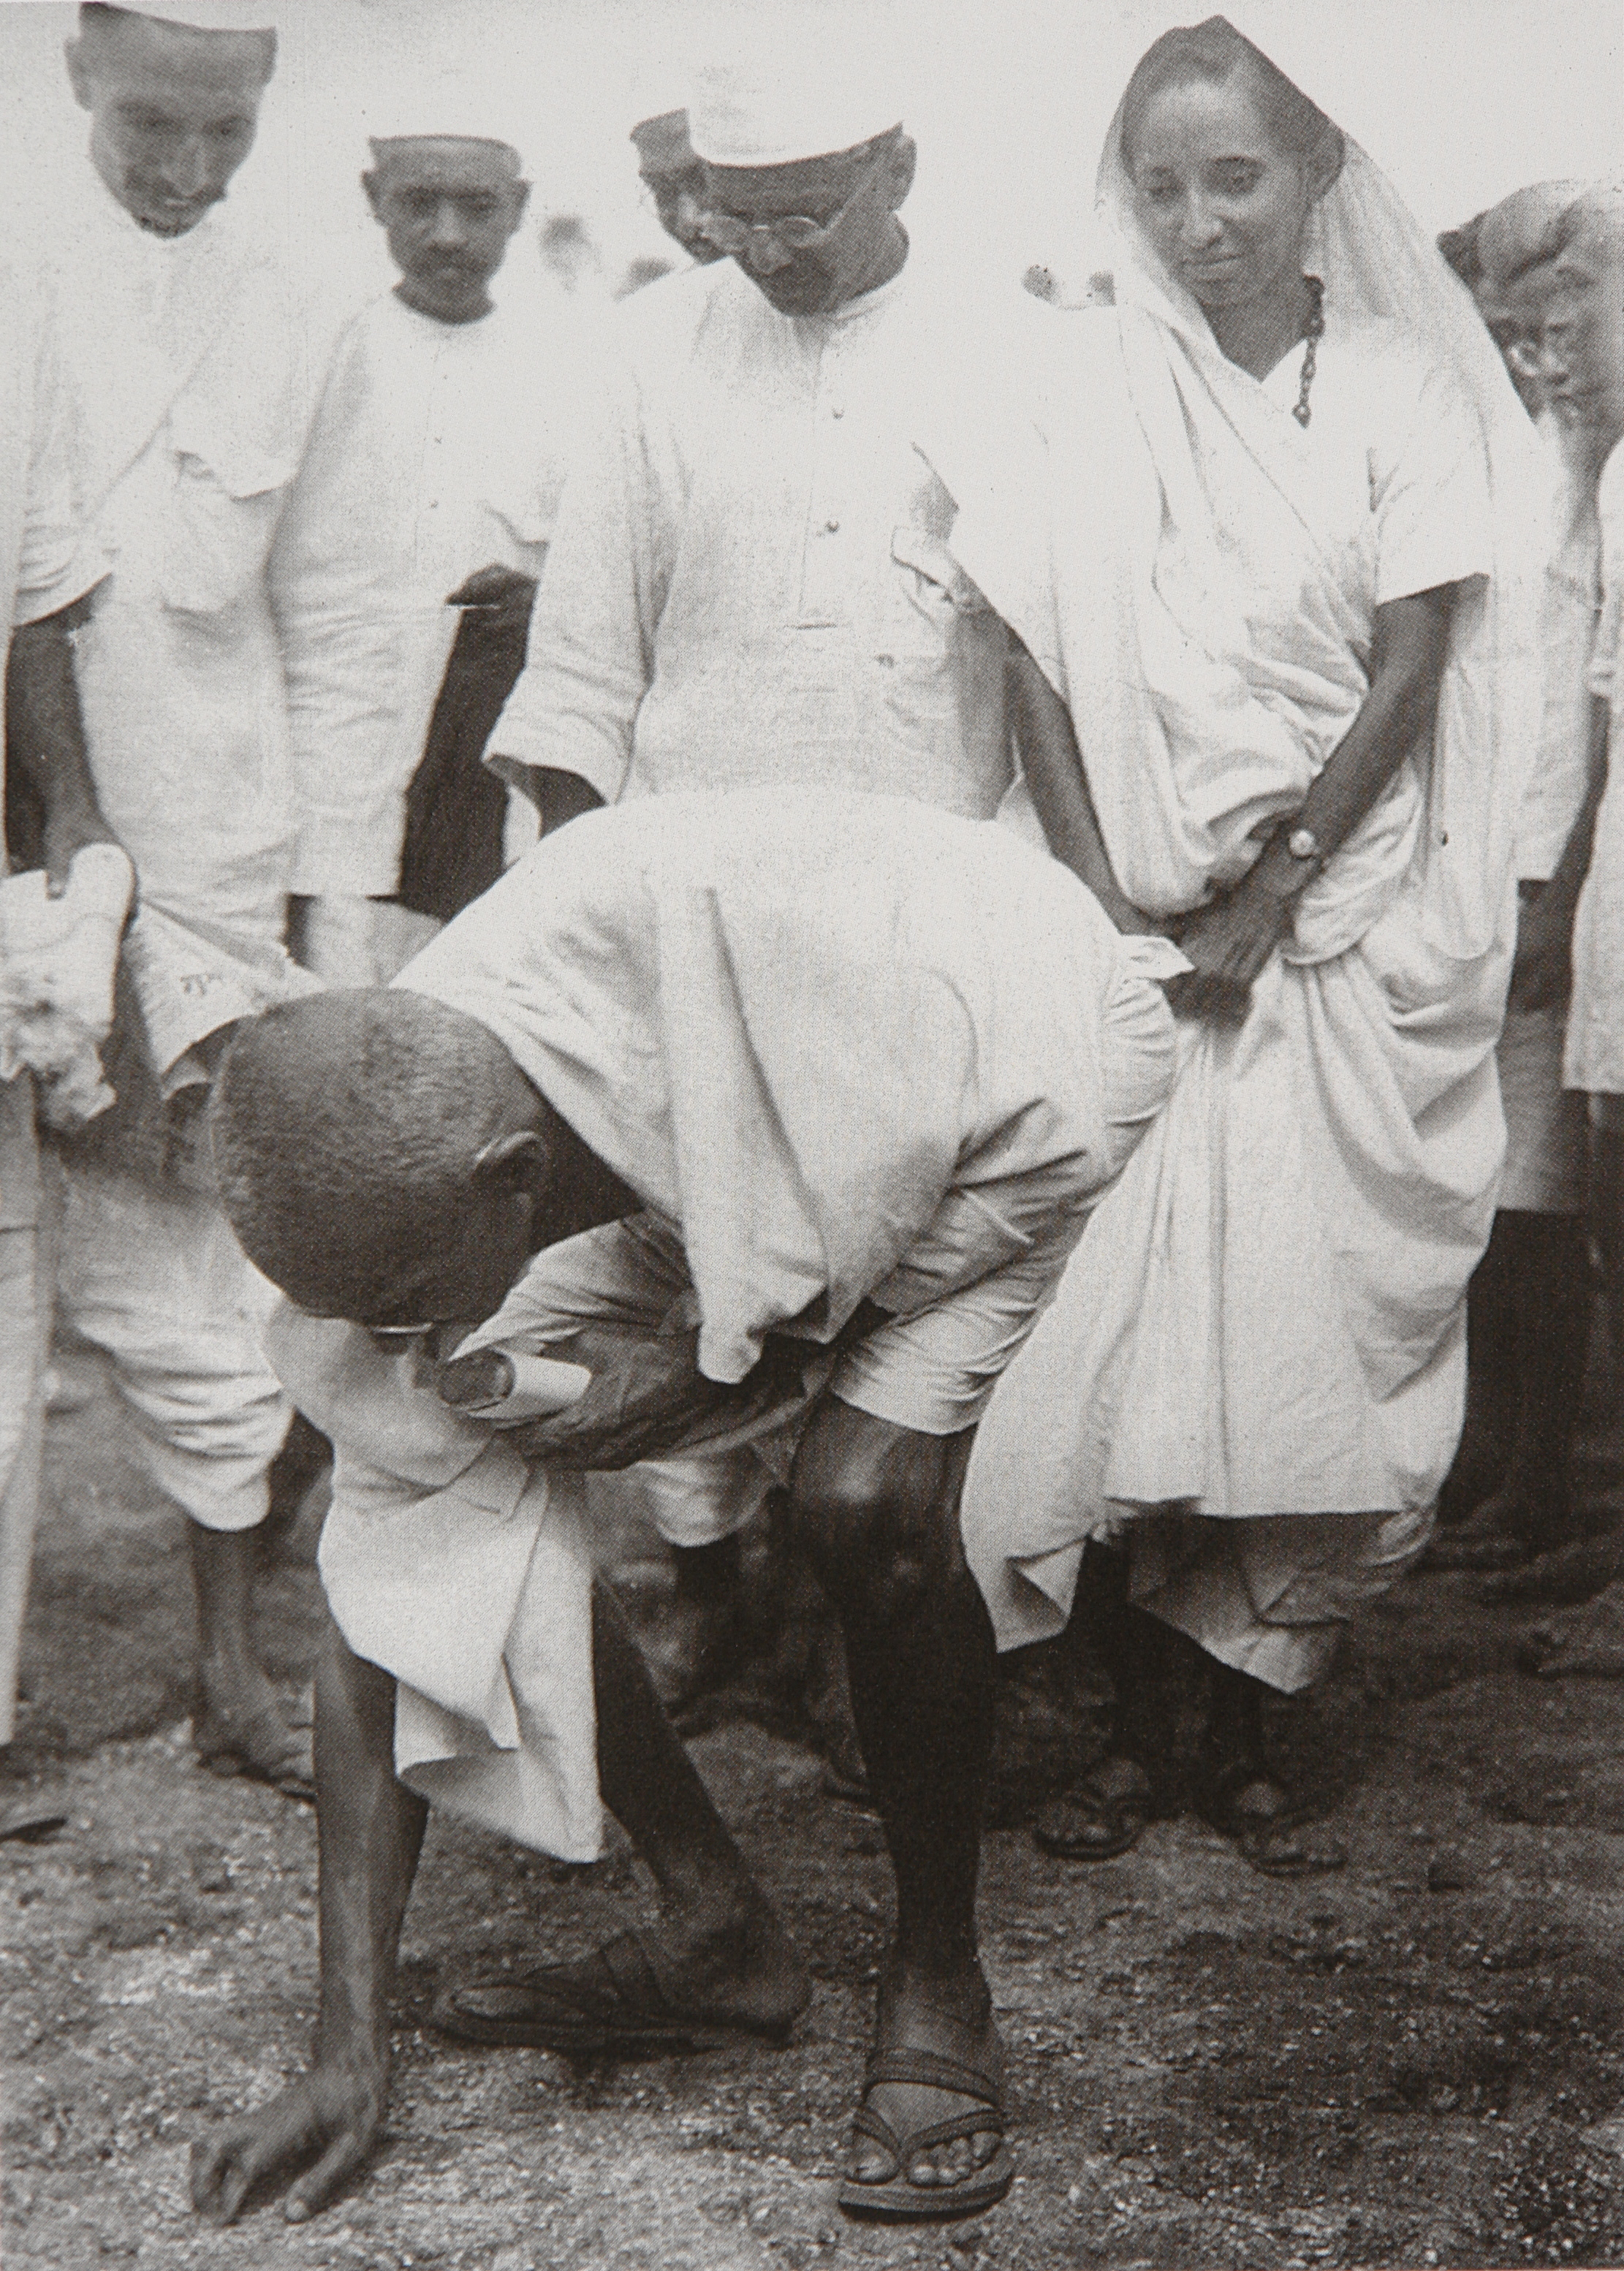 dandi march The salt march, also known as the dandi march or the salt sastyagraha, began on march 12, 1930, near gandhi's religious retreat in sabarmati ashram.